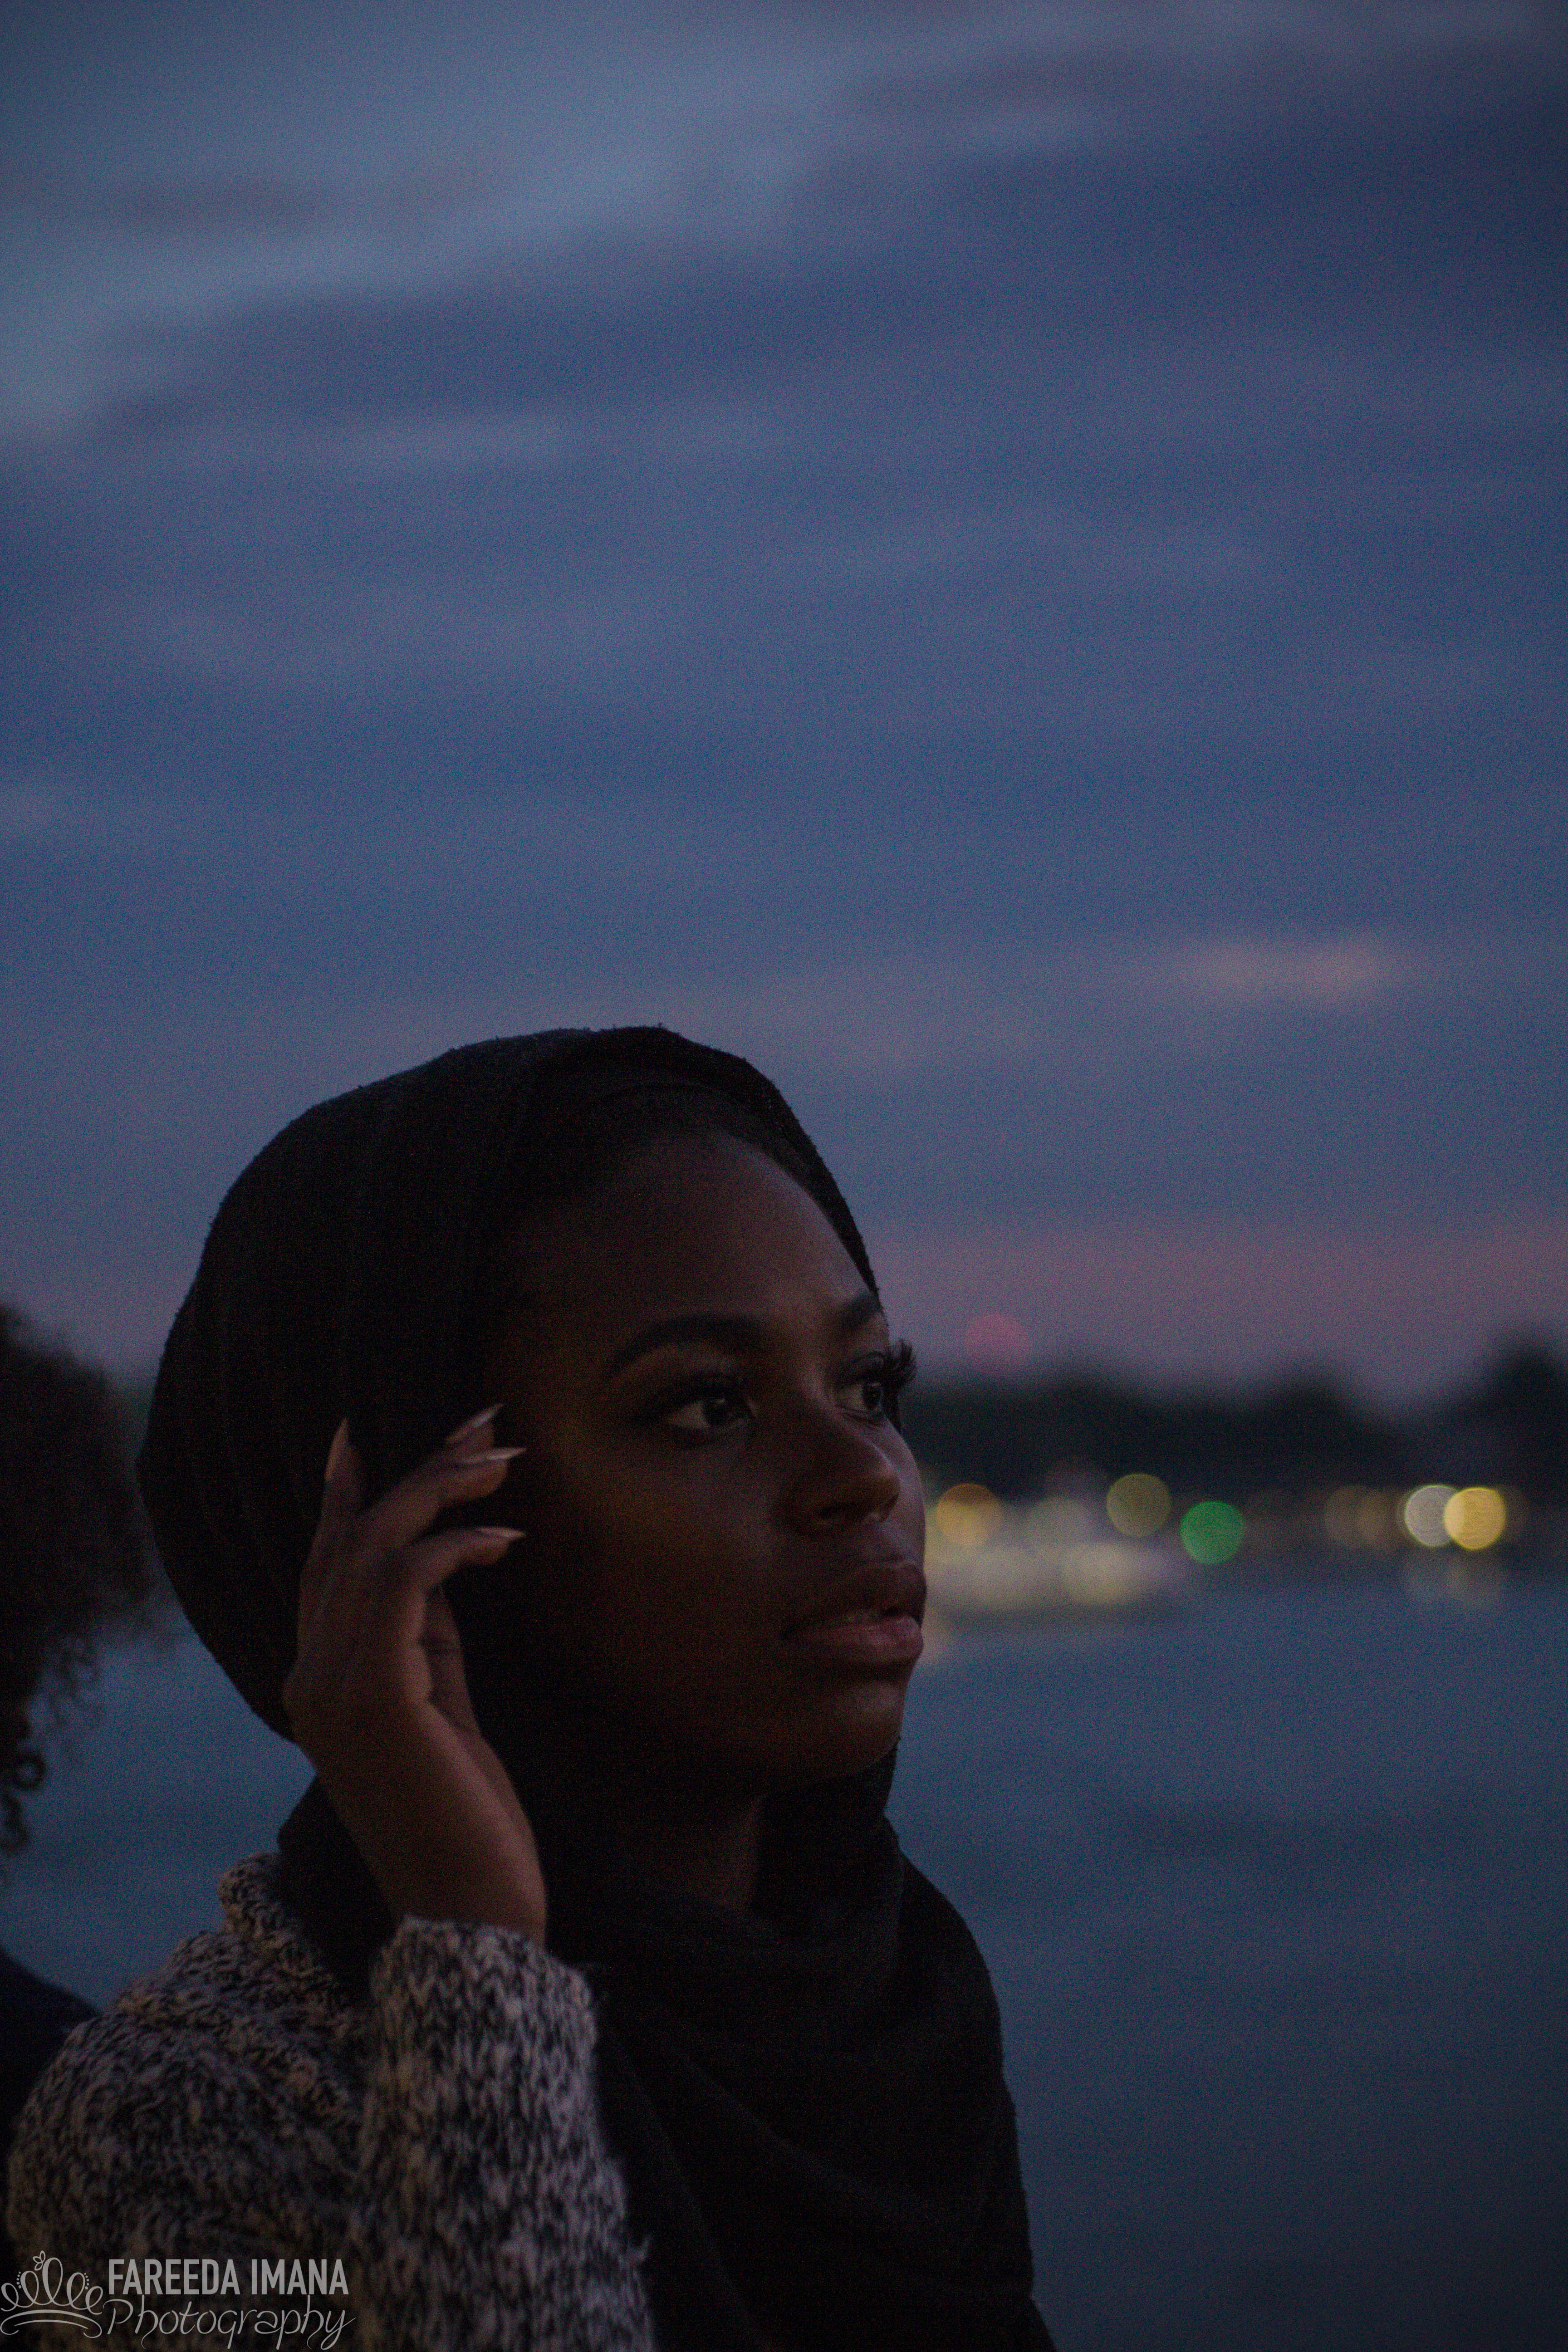 A girl looking off into the distance with a blurred background